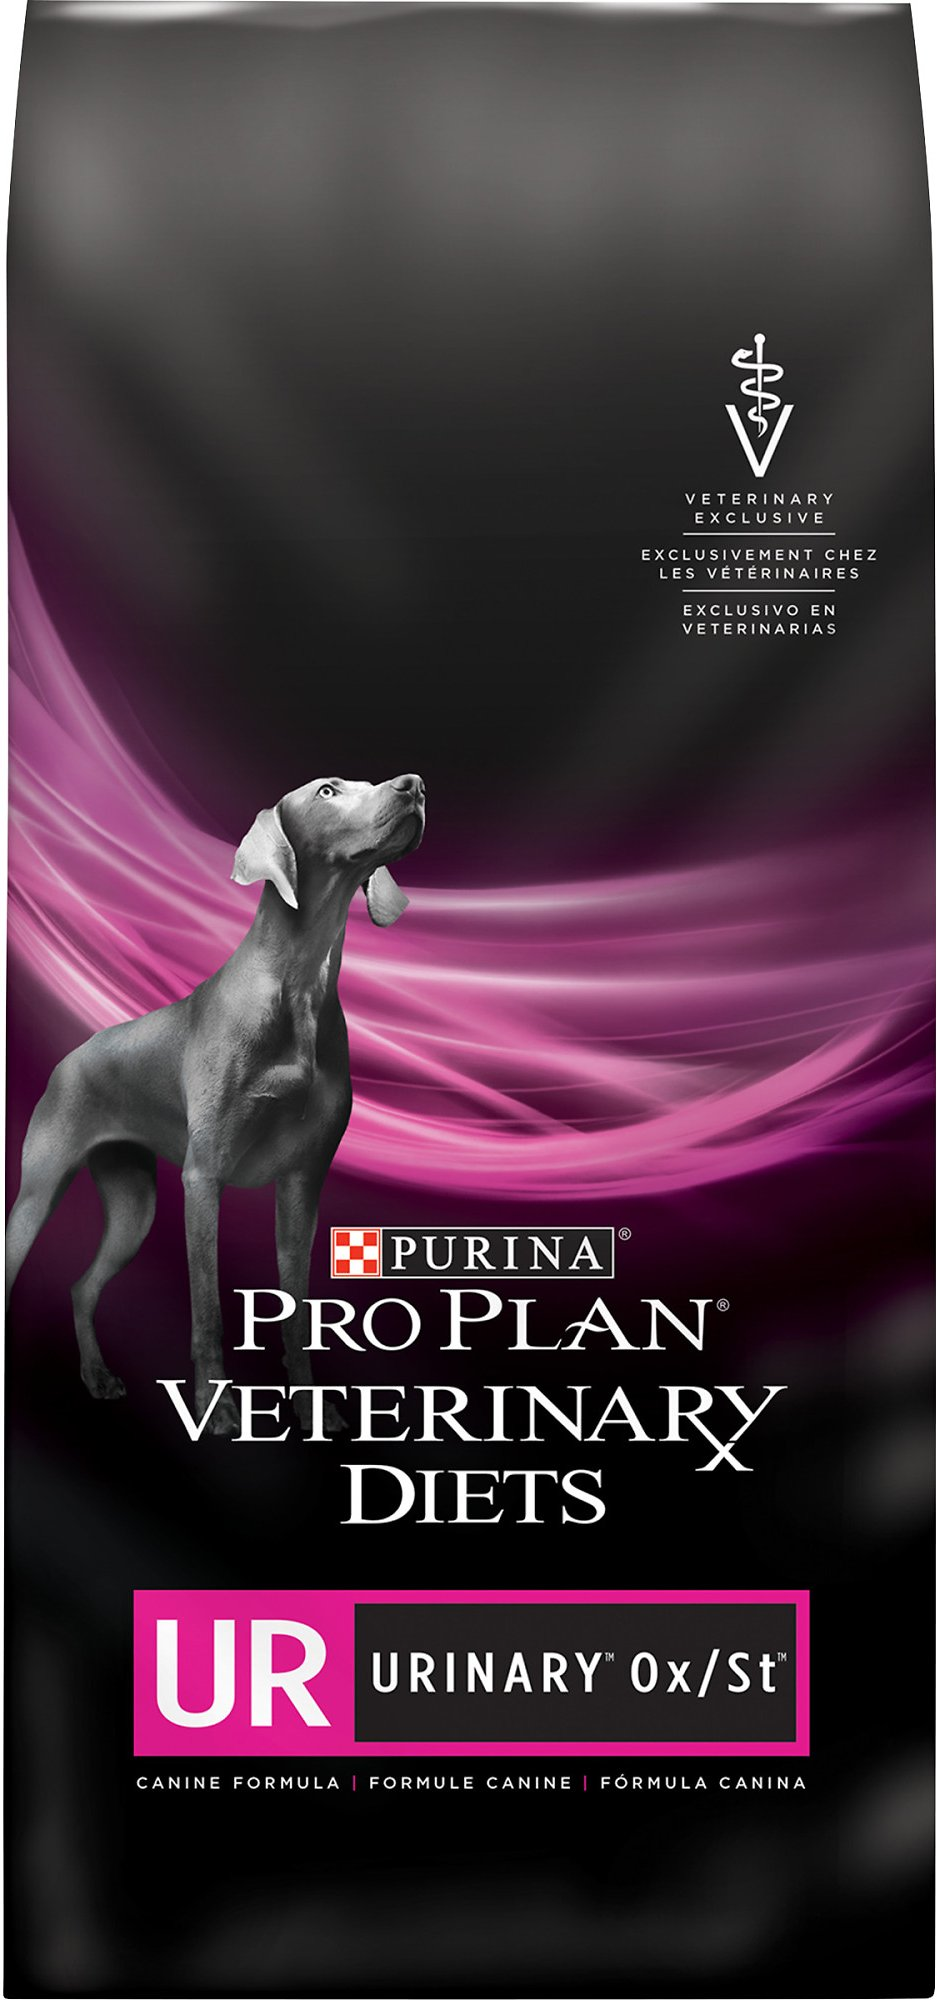 Dog Food for Urinary Purina Pro Plan Veterinary Diets UR Dry Dog Food